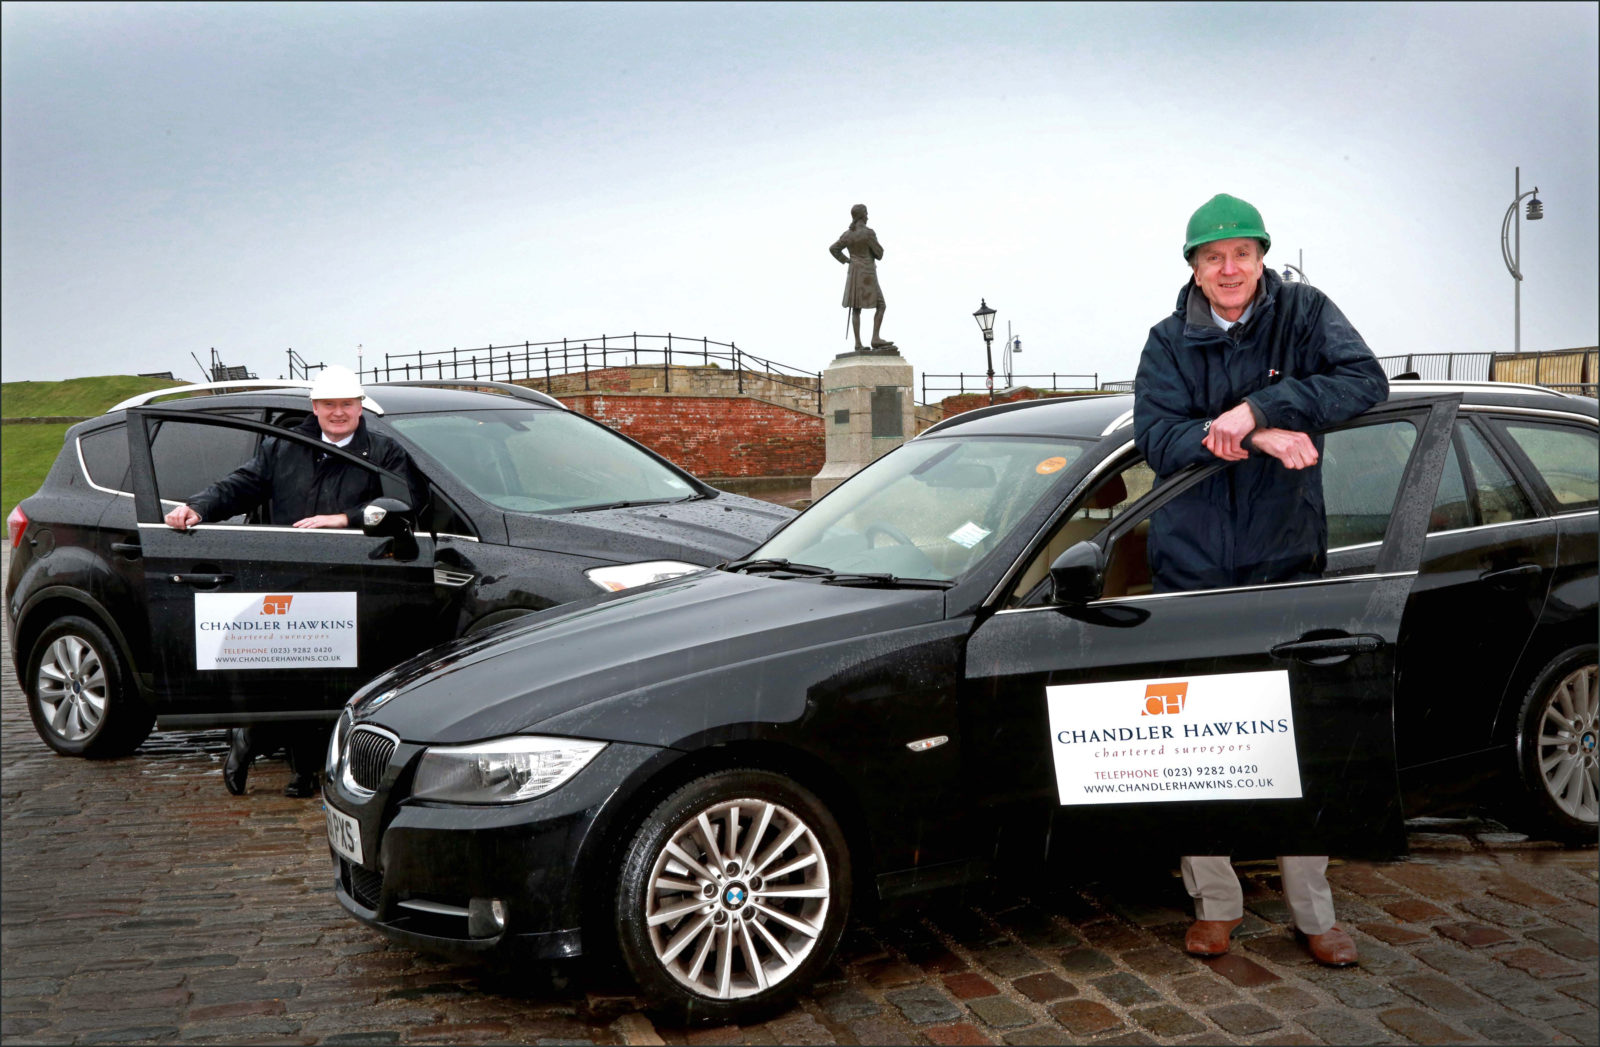 Chandler Hawkins launch logo branding on their company cars, Neil Hawkins and Peter Chandler are pictured with the vehicles in Portsmouth.